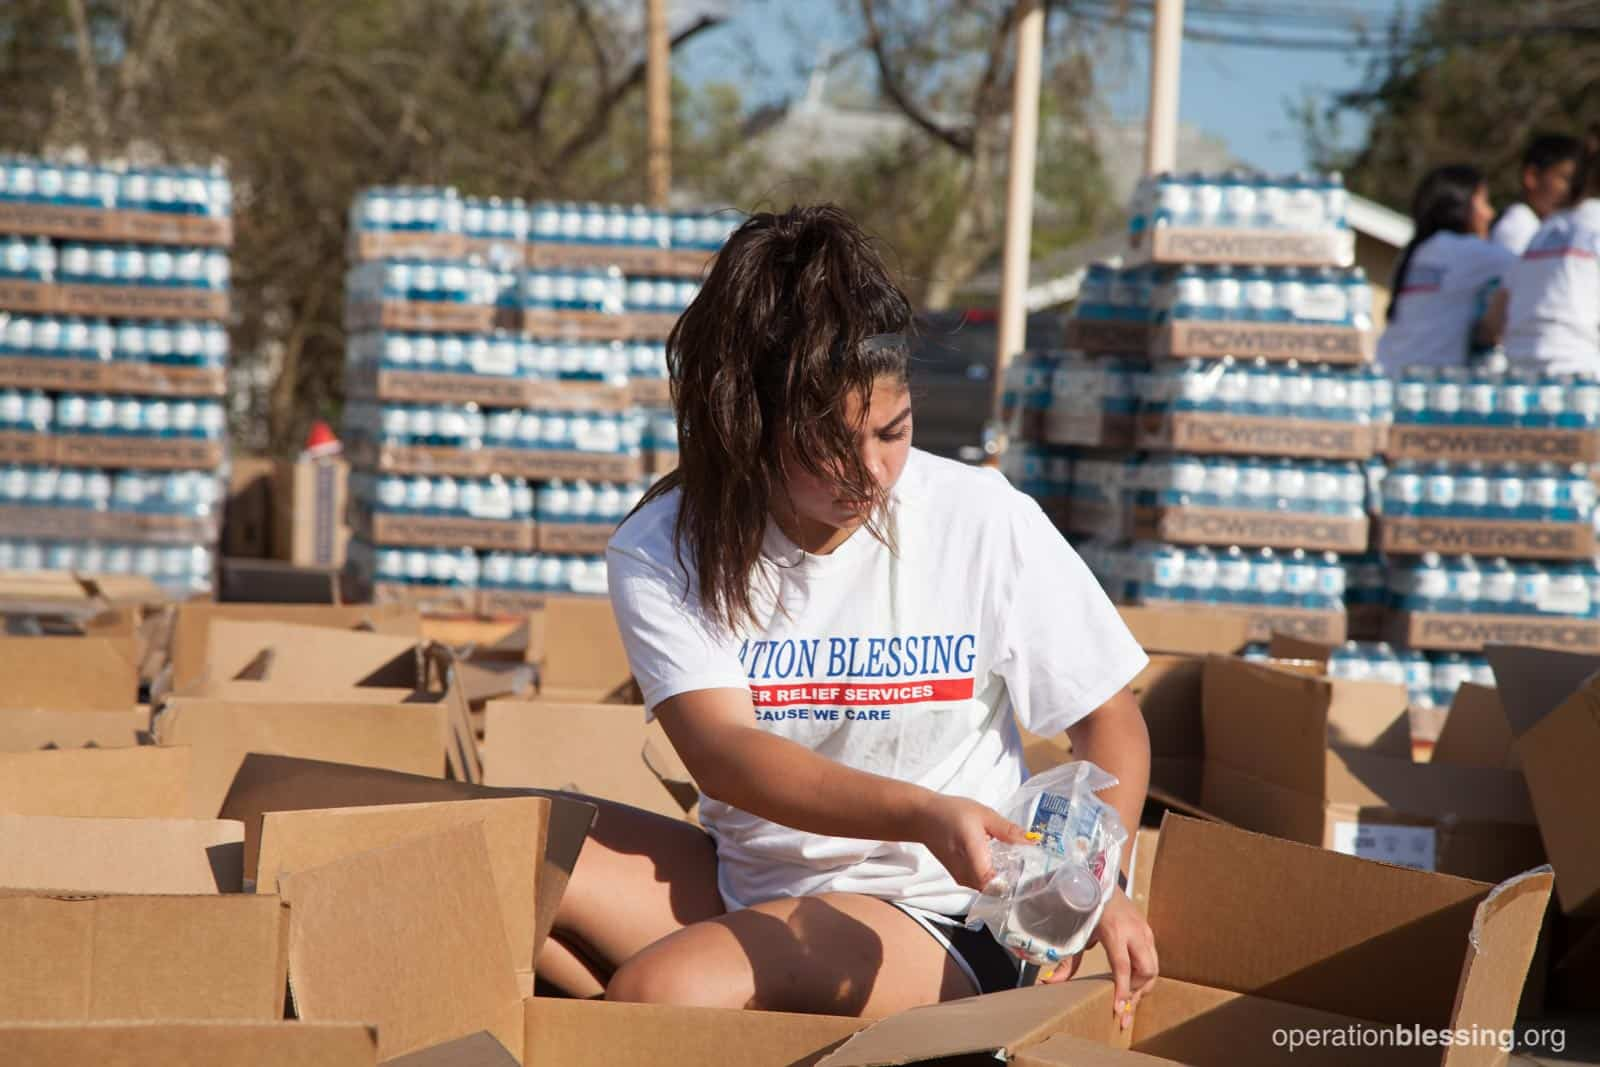 A young woman sits amid boxes of supplies with drinks stacked behind her, helping victims of Hurricane Harvey.